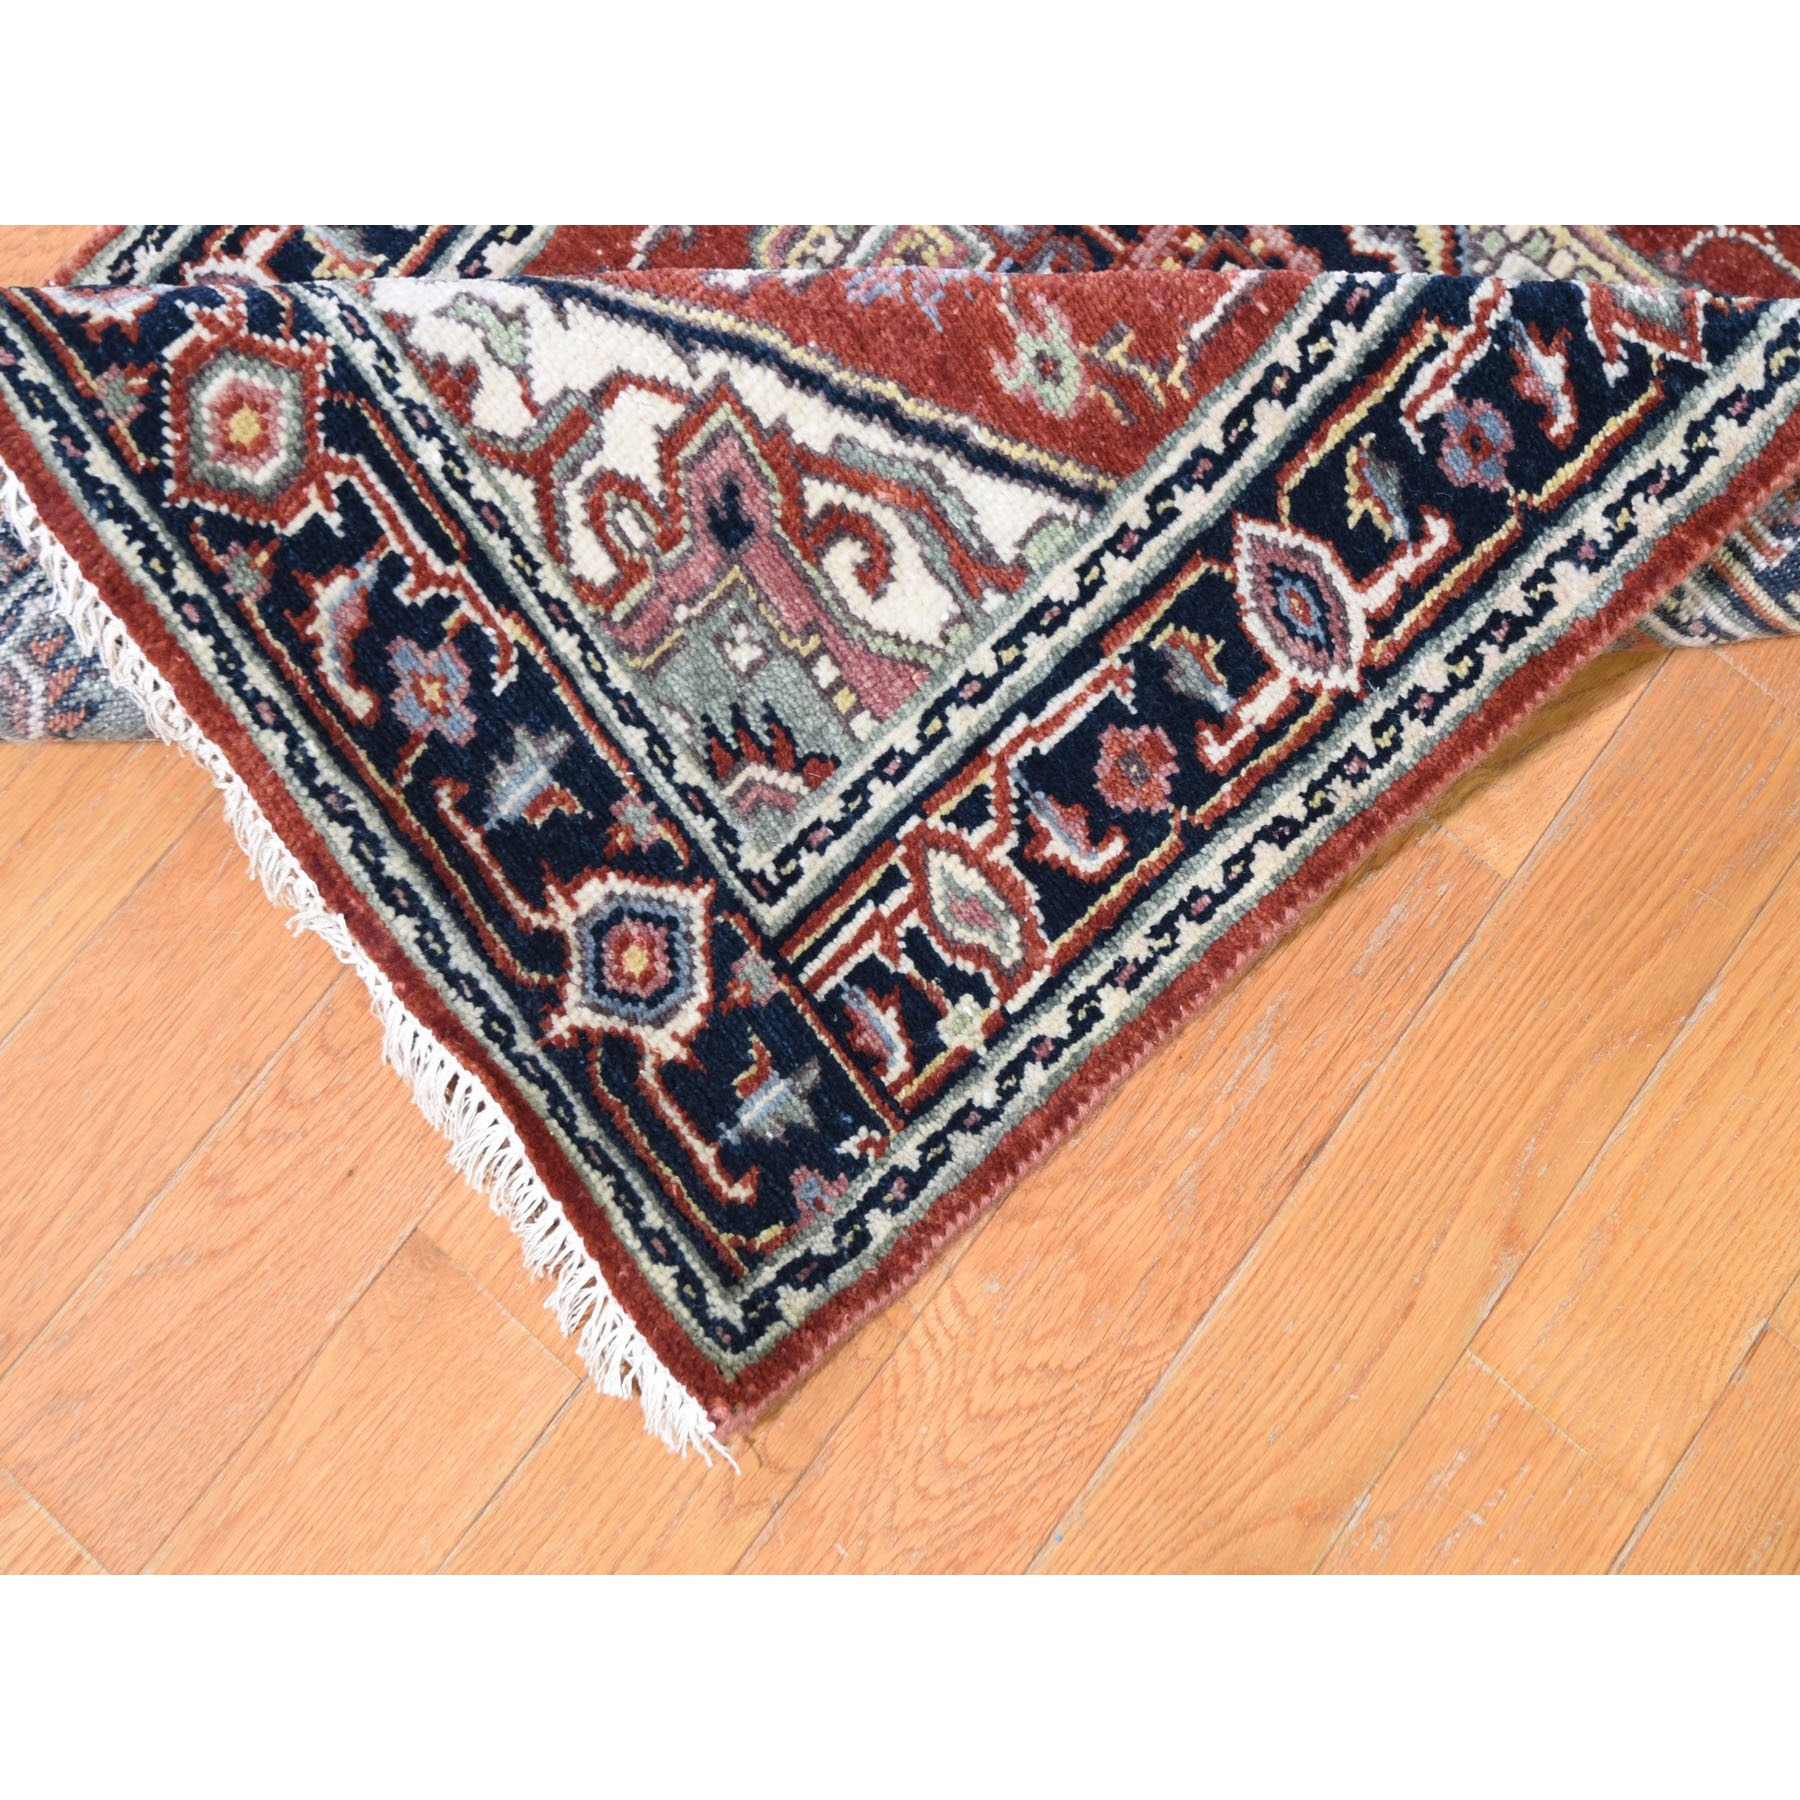 2-6 x26- Red Heriz Revival Pure Wool Hand Knotted XL Runner Oriental Rug